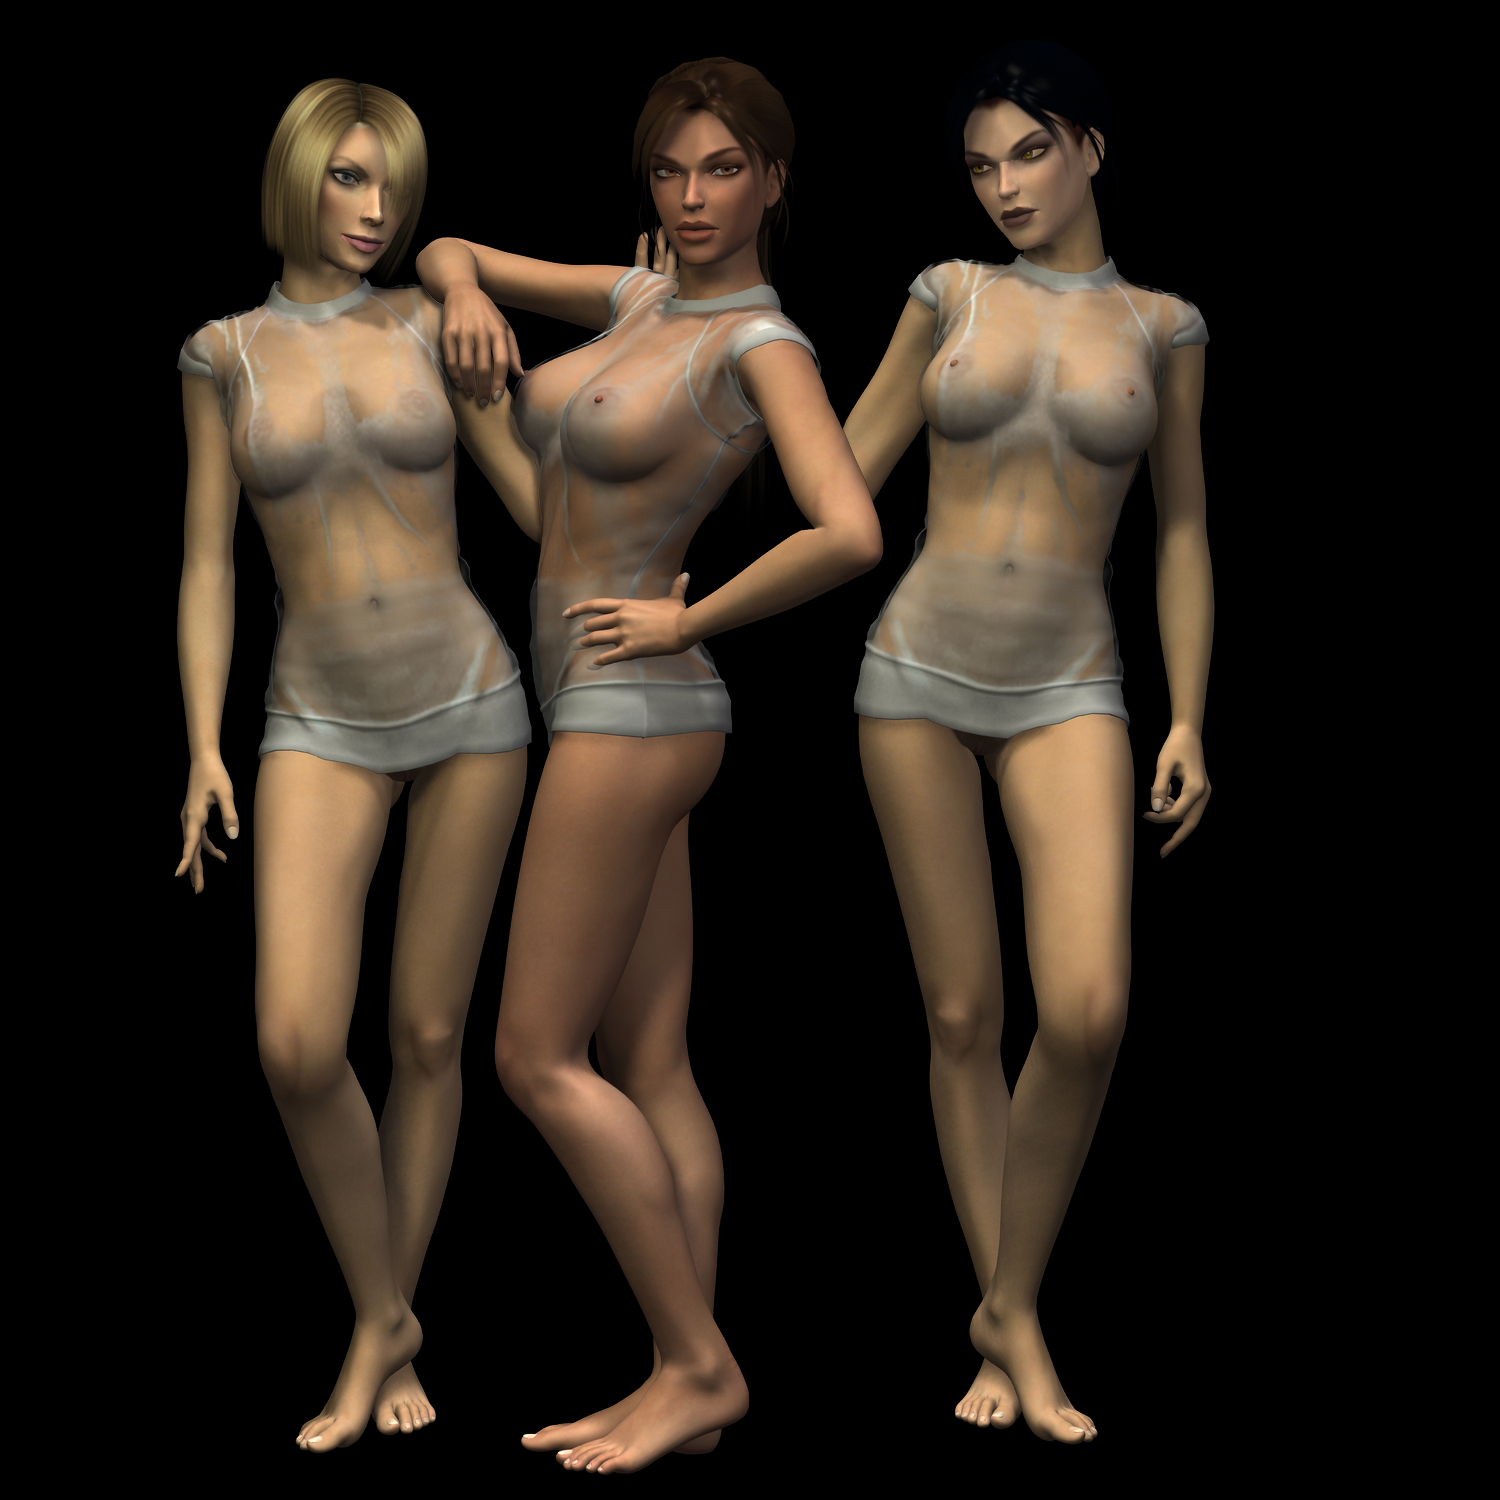 Tomb raider underworld nude mod pics sexual clip